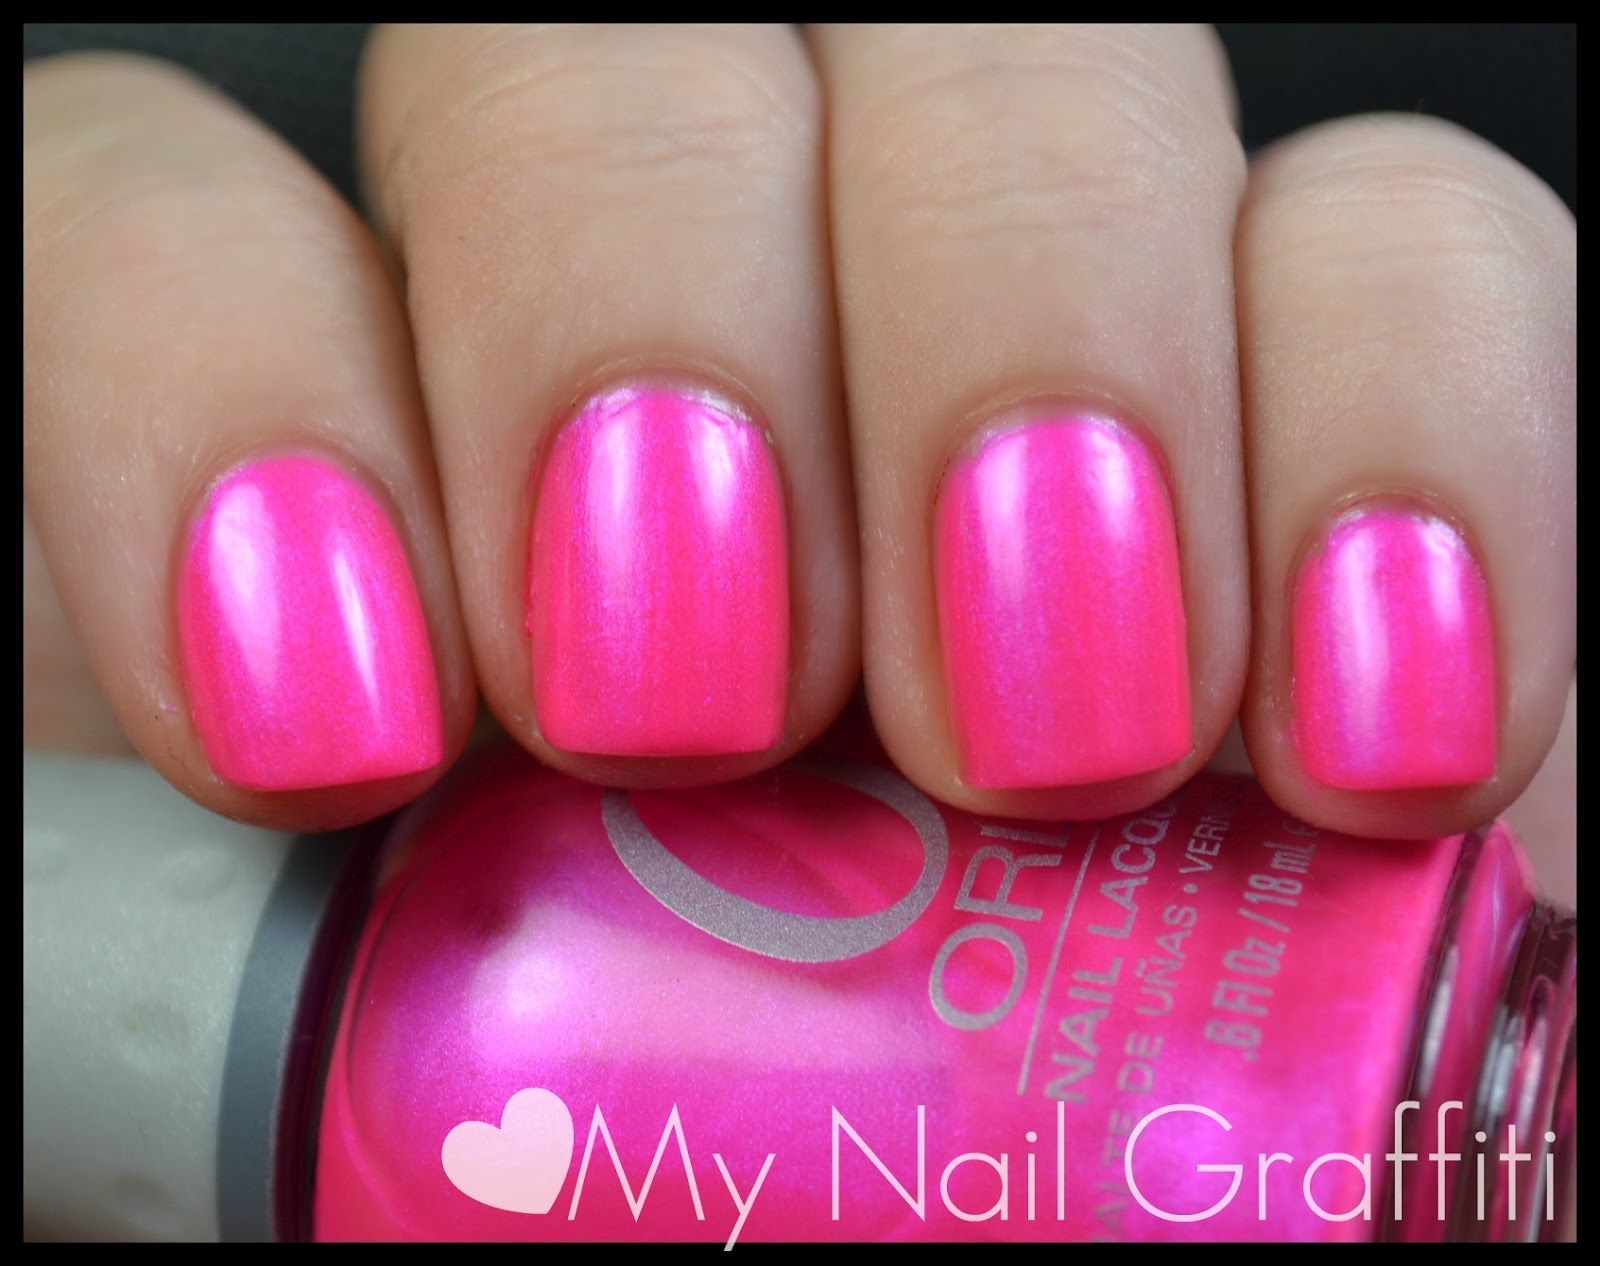 Orly - Oh Cabana Boy | My Nail Polish Collection in Pictures | Pinterest